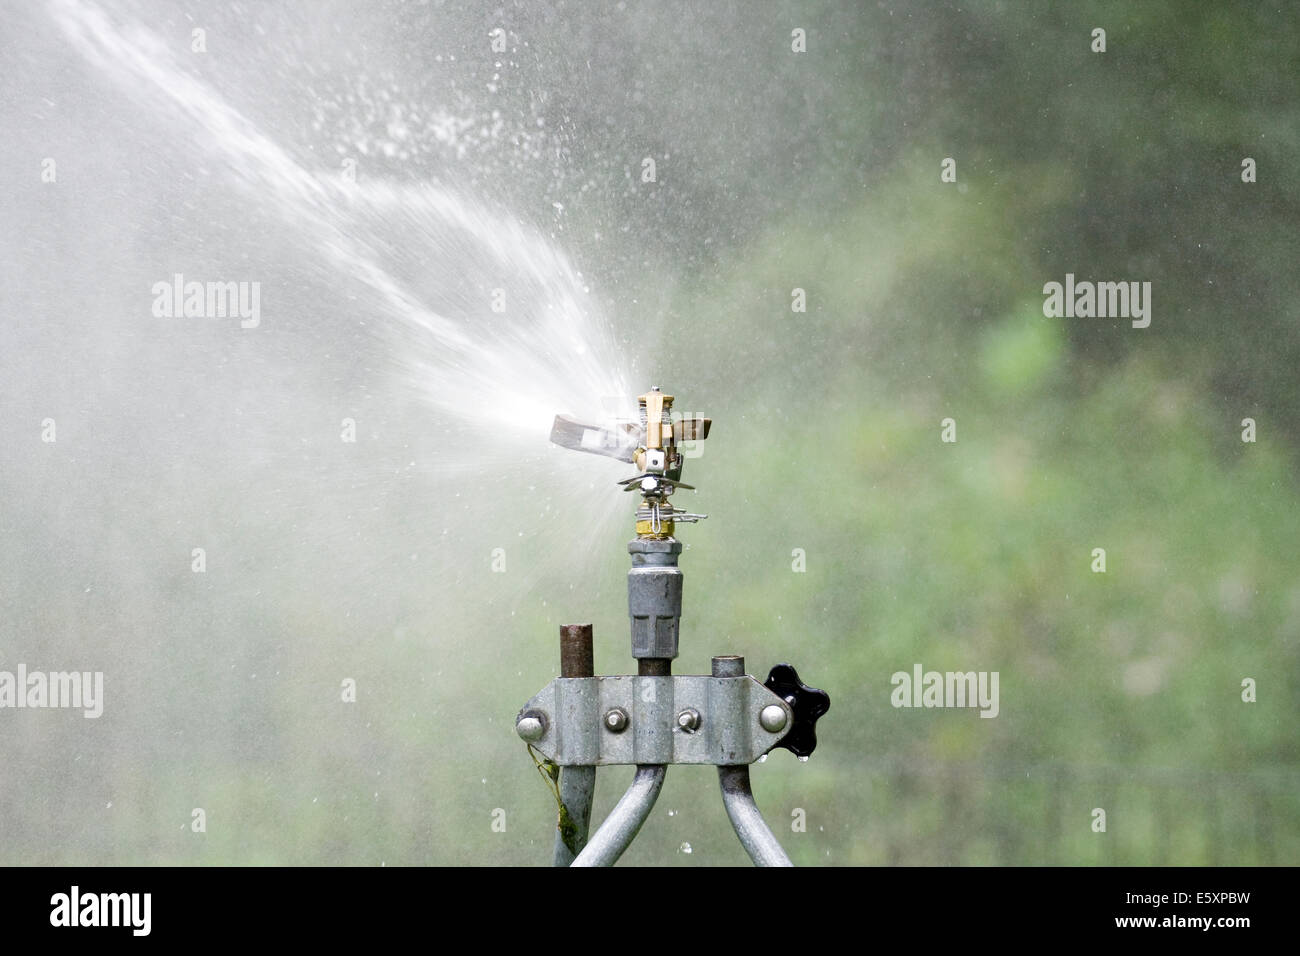 Rain Bird Adjustable Brass Impact Rotor Blade hitting a water stream on the left side of the sprinkler head - Stock Image